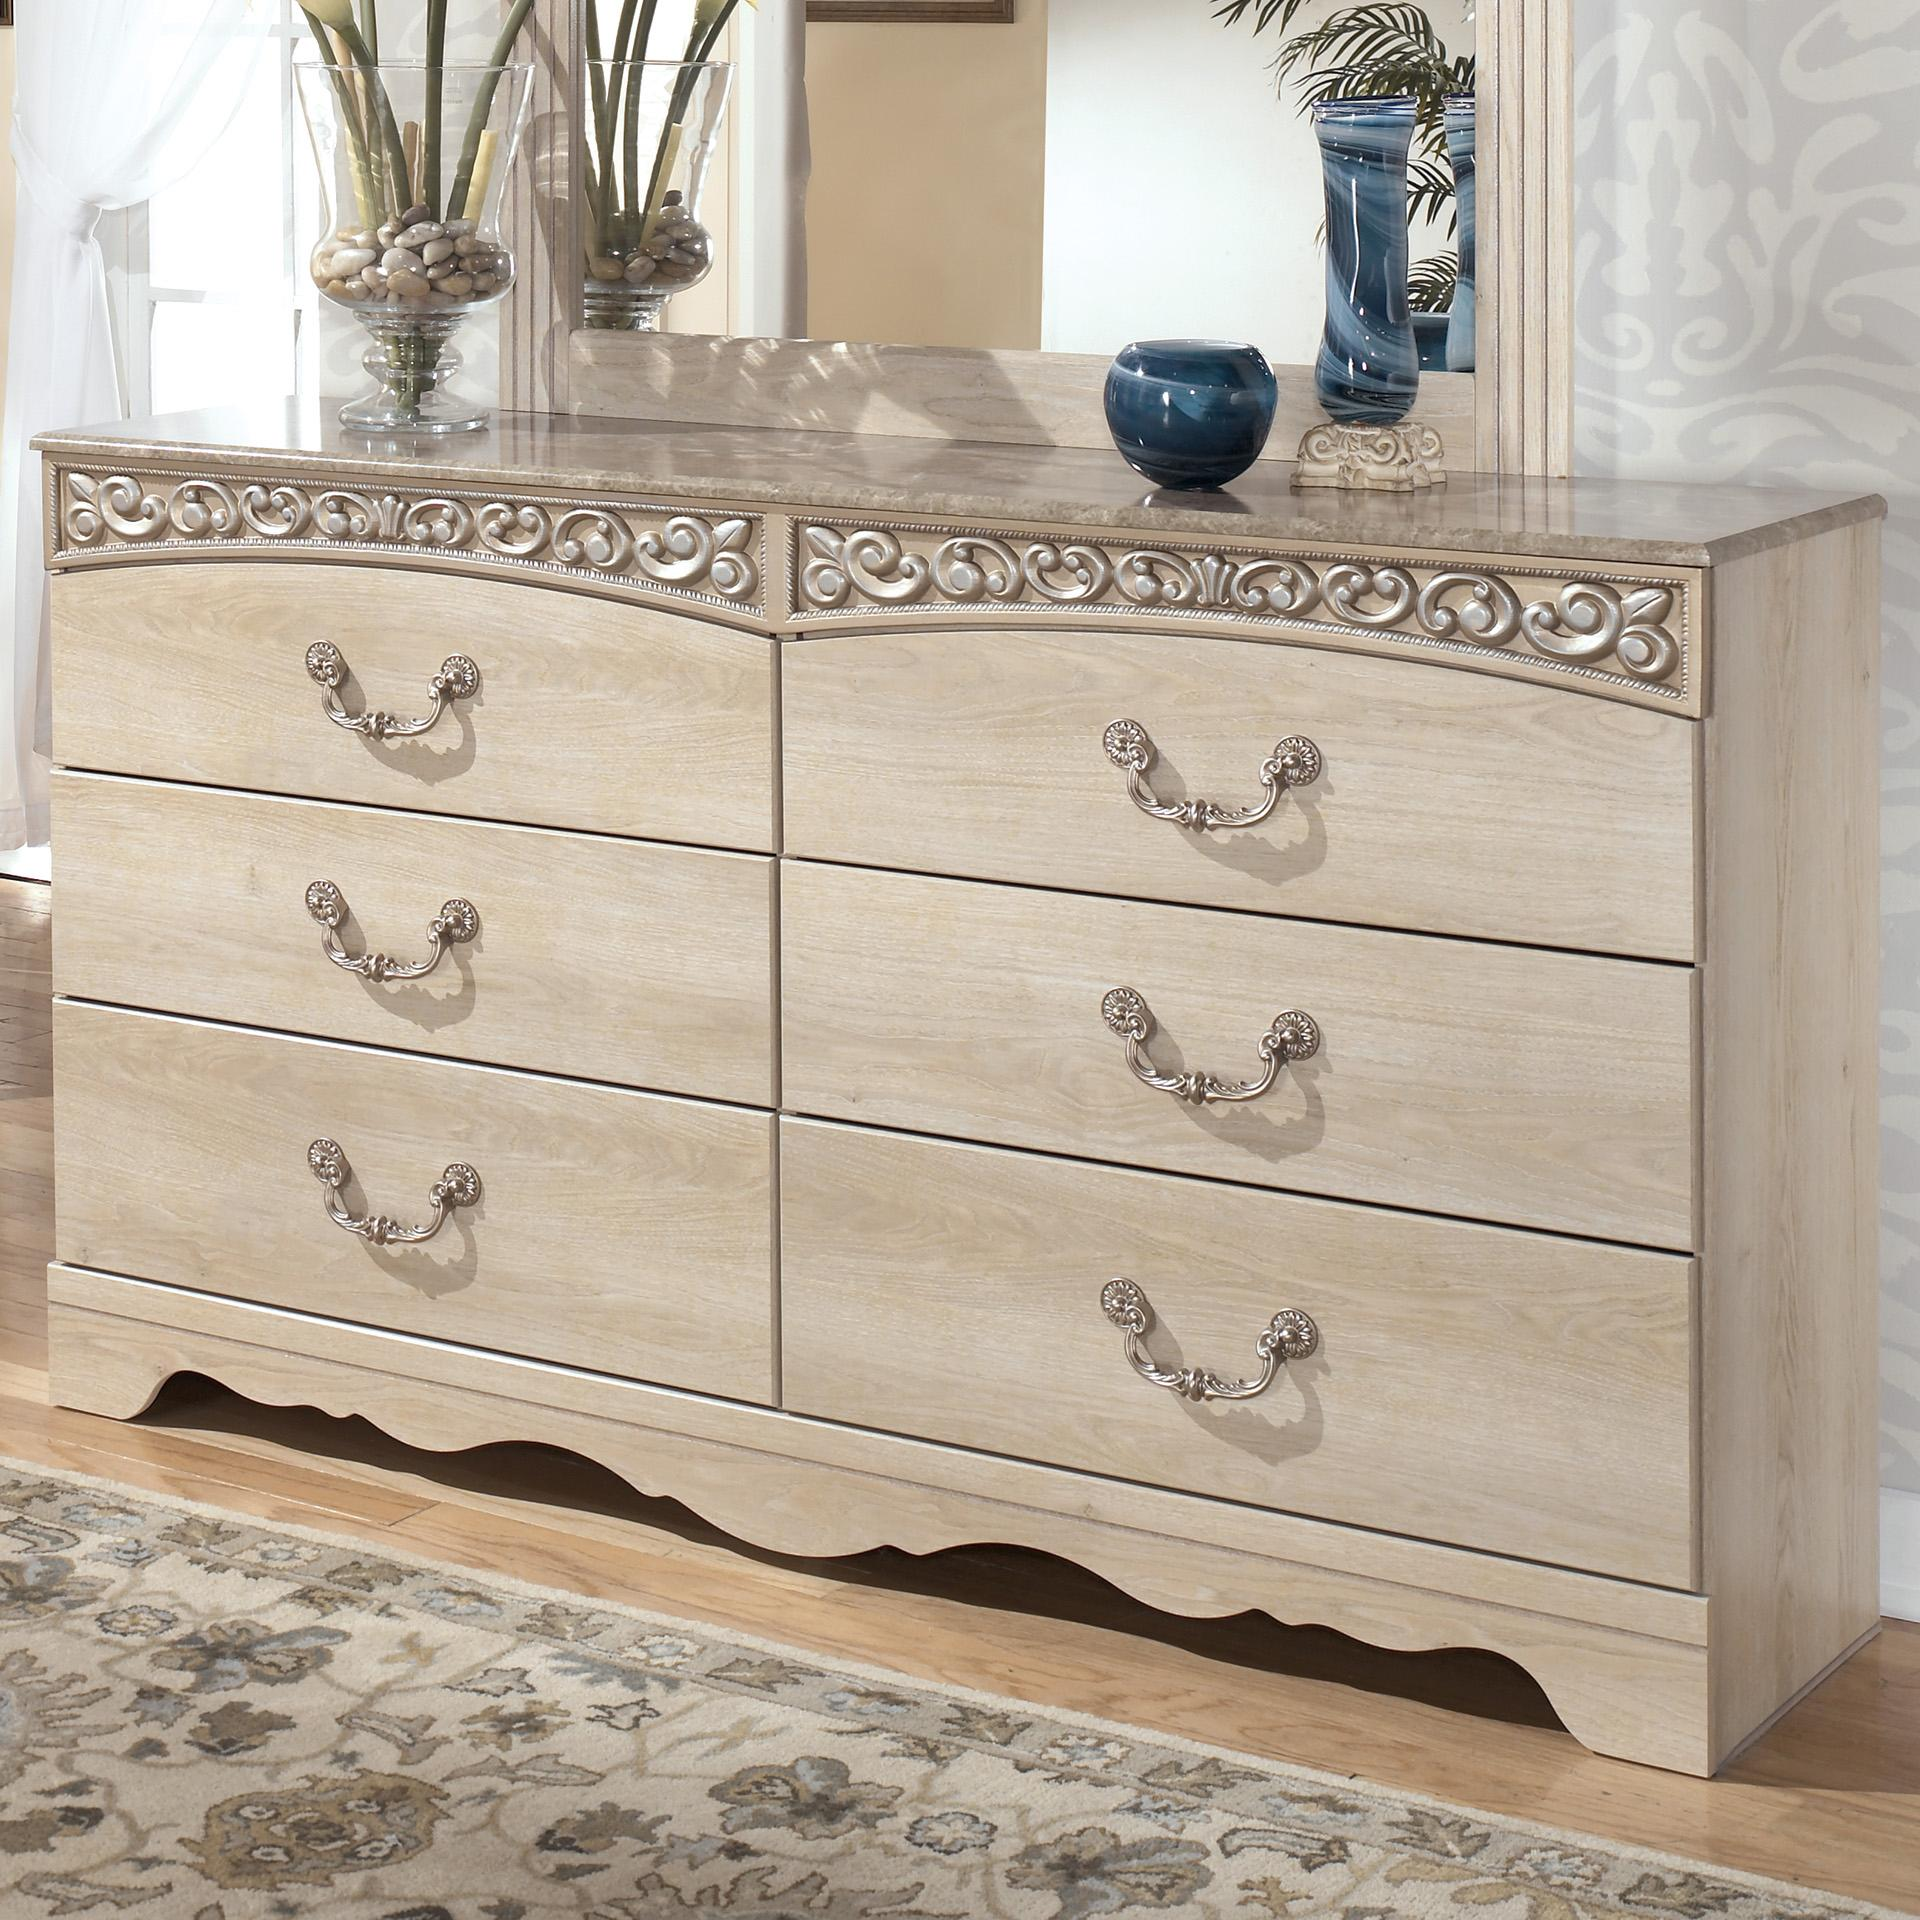 Signature Design by Ashley Catalina Dresser - Item Number: B196-31